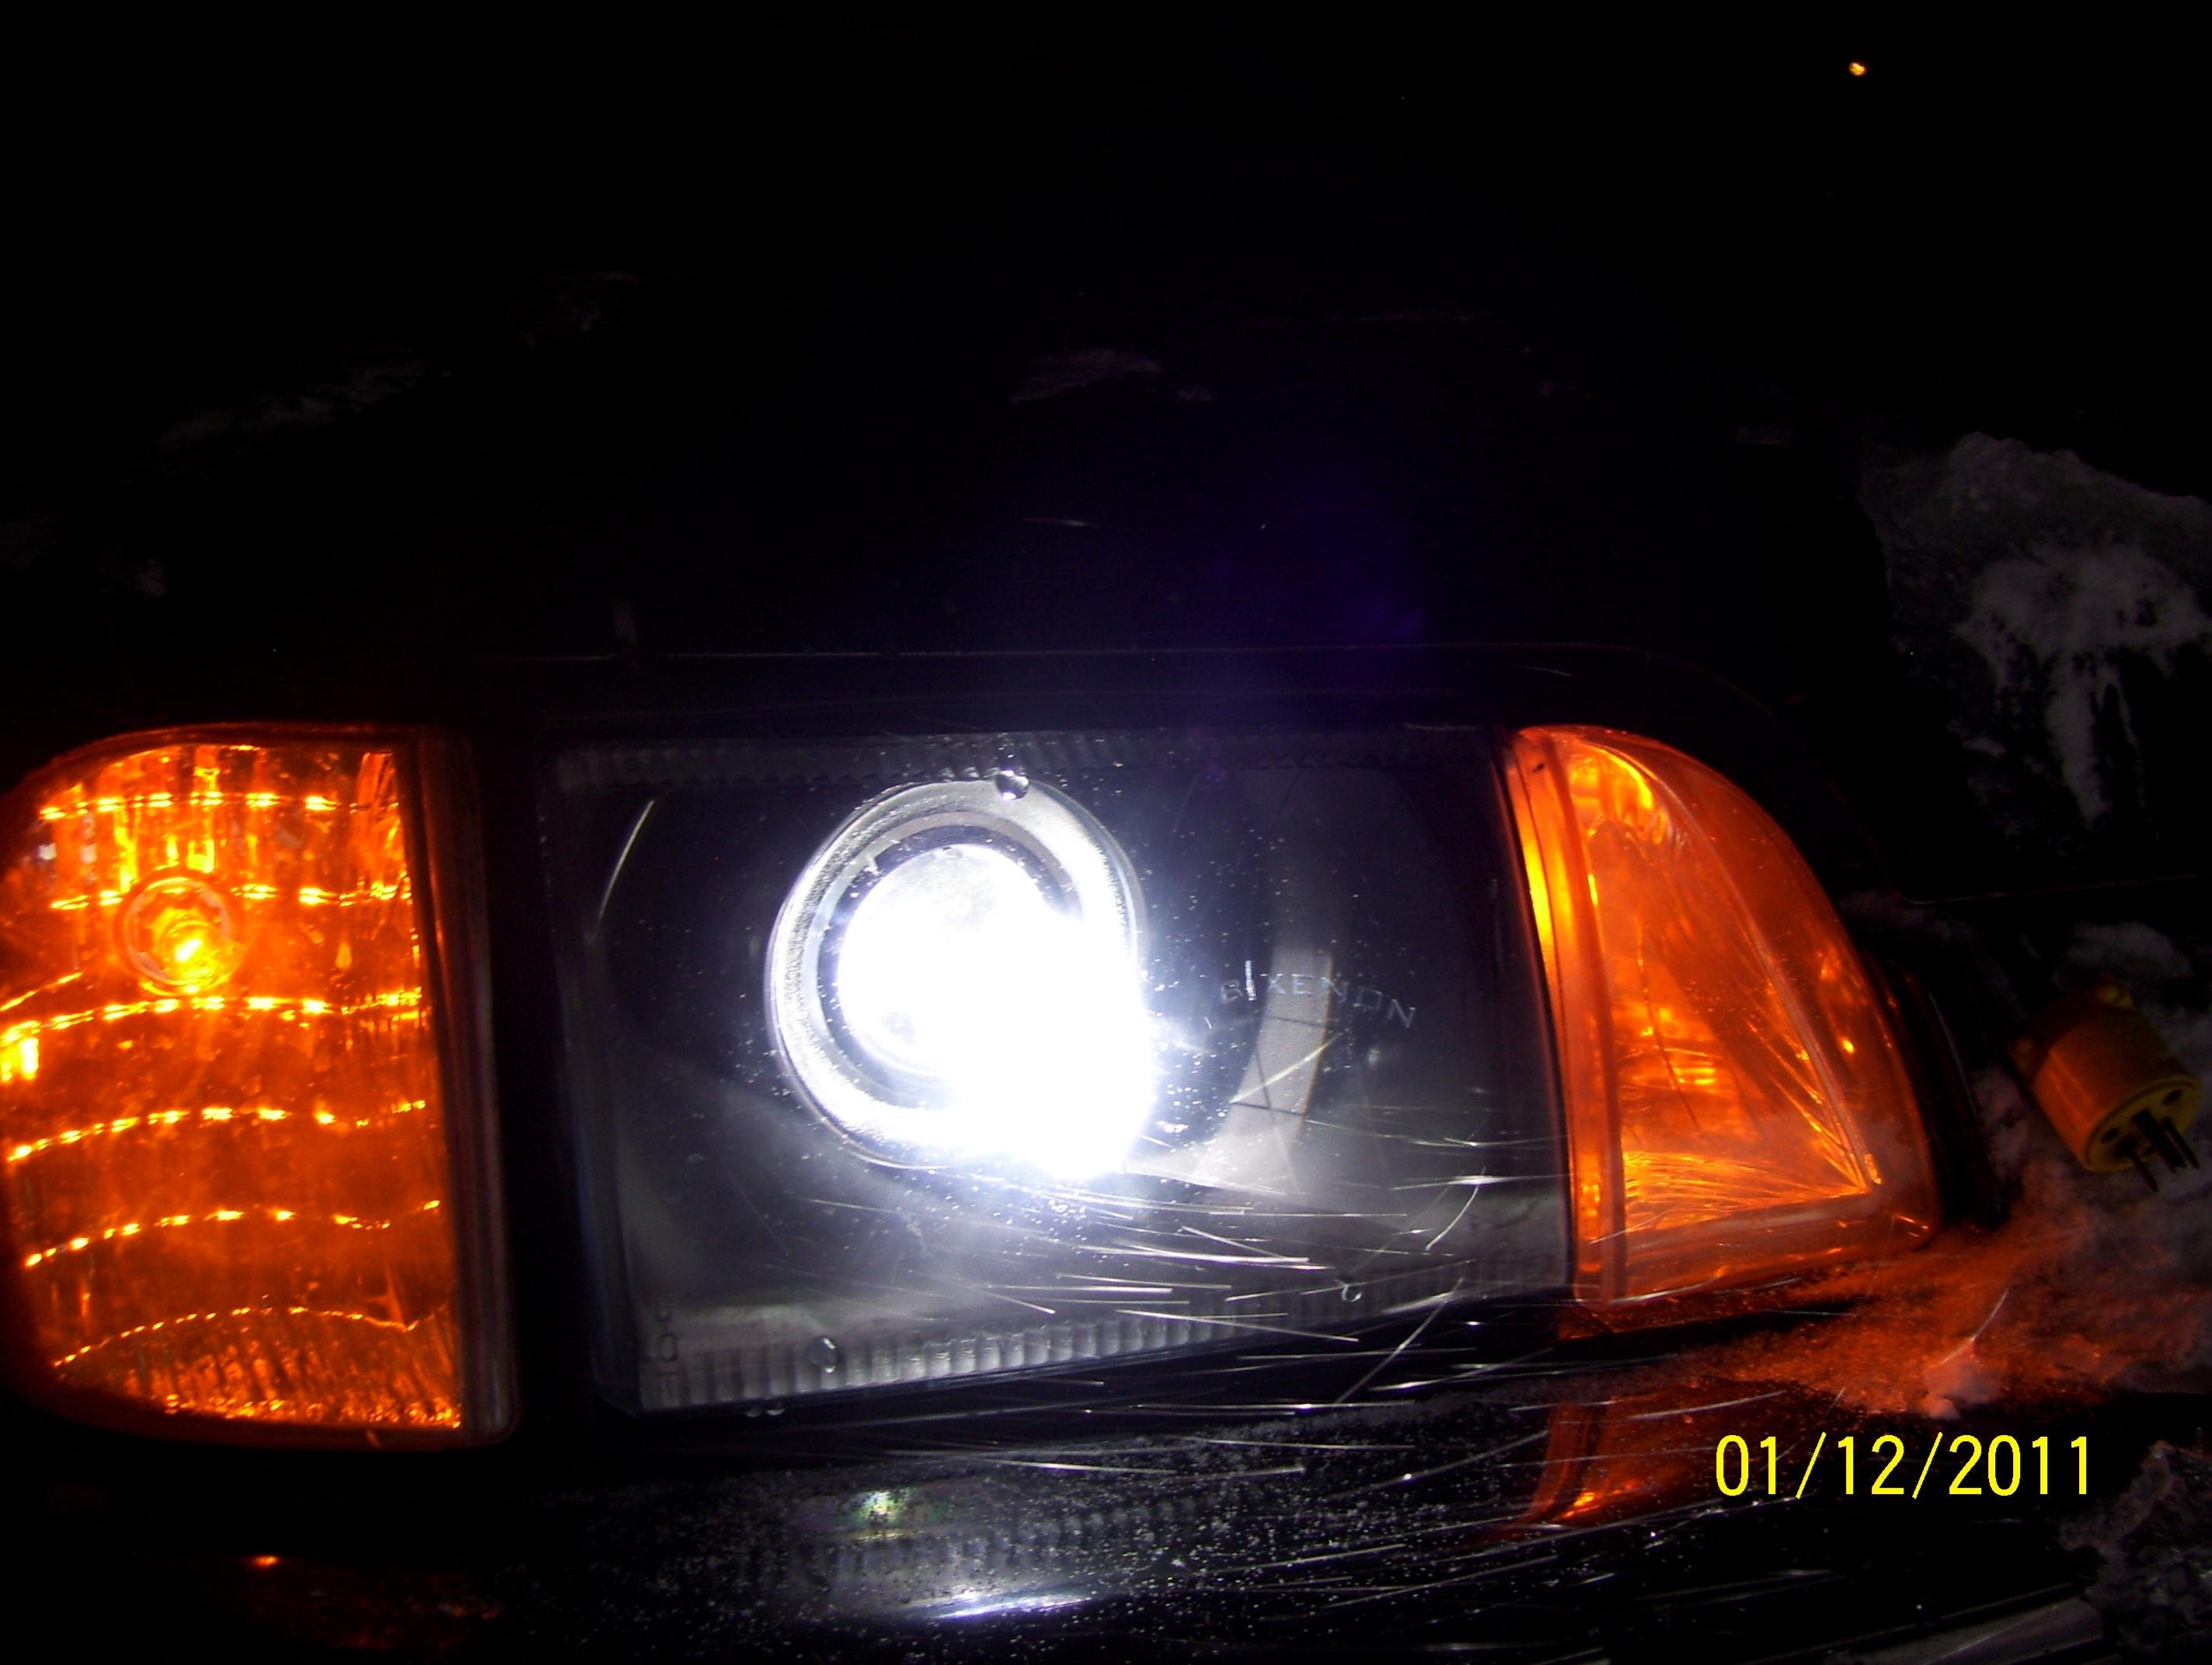 1987 1993 Mustang Projector HID Page 2 Ford Mustang Forum